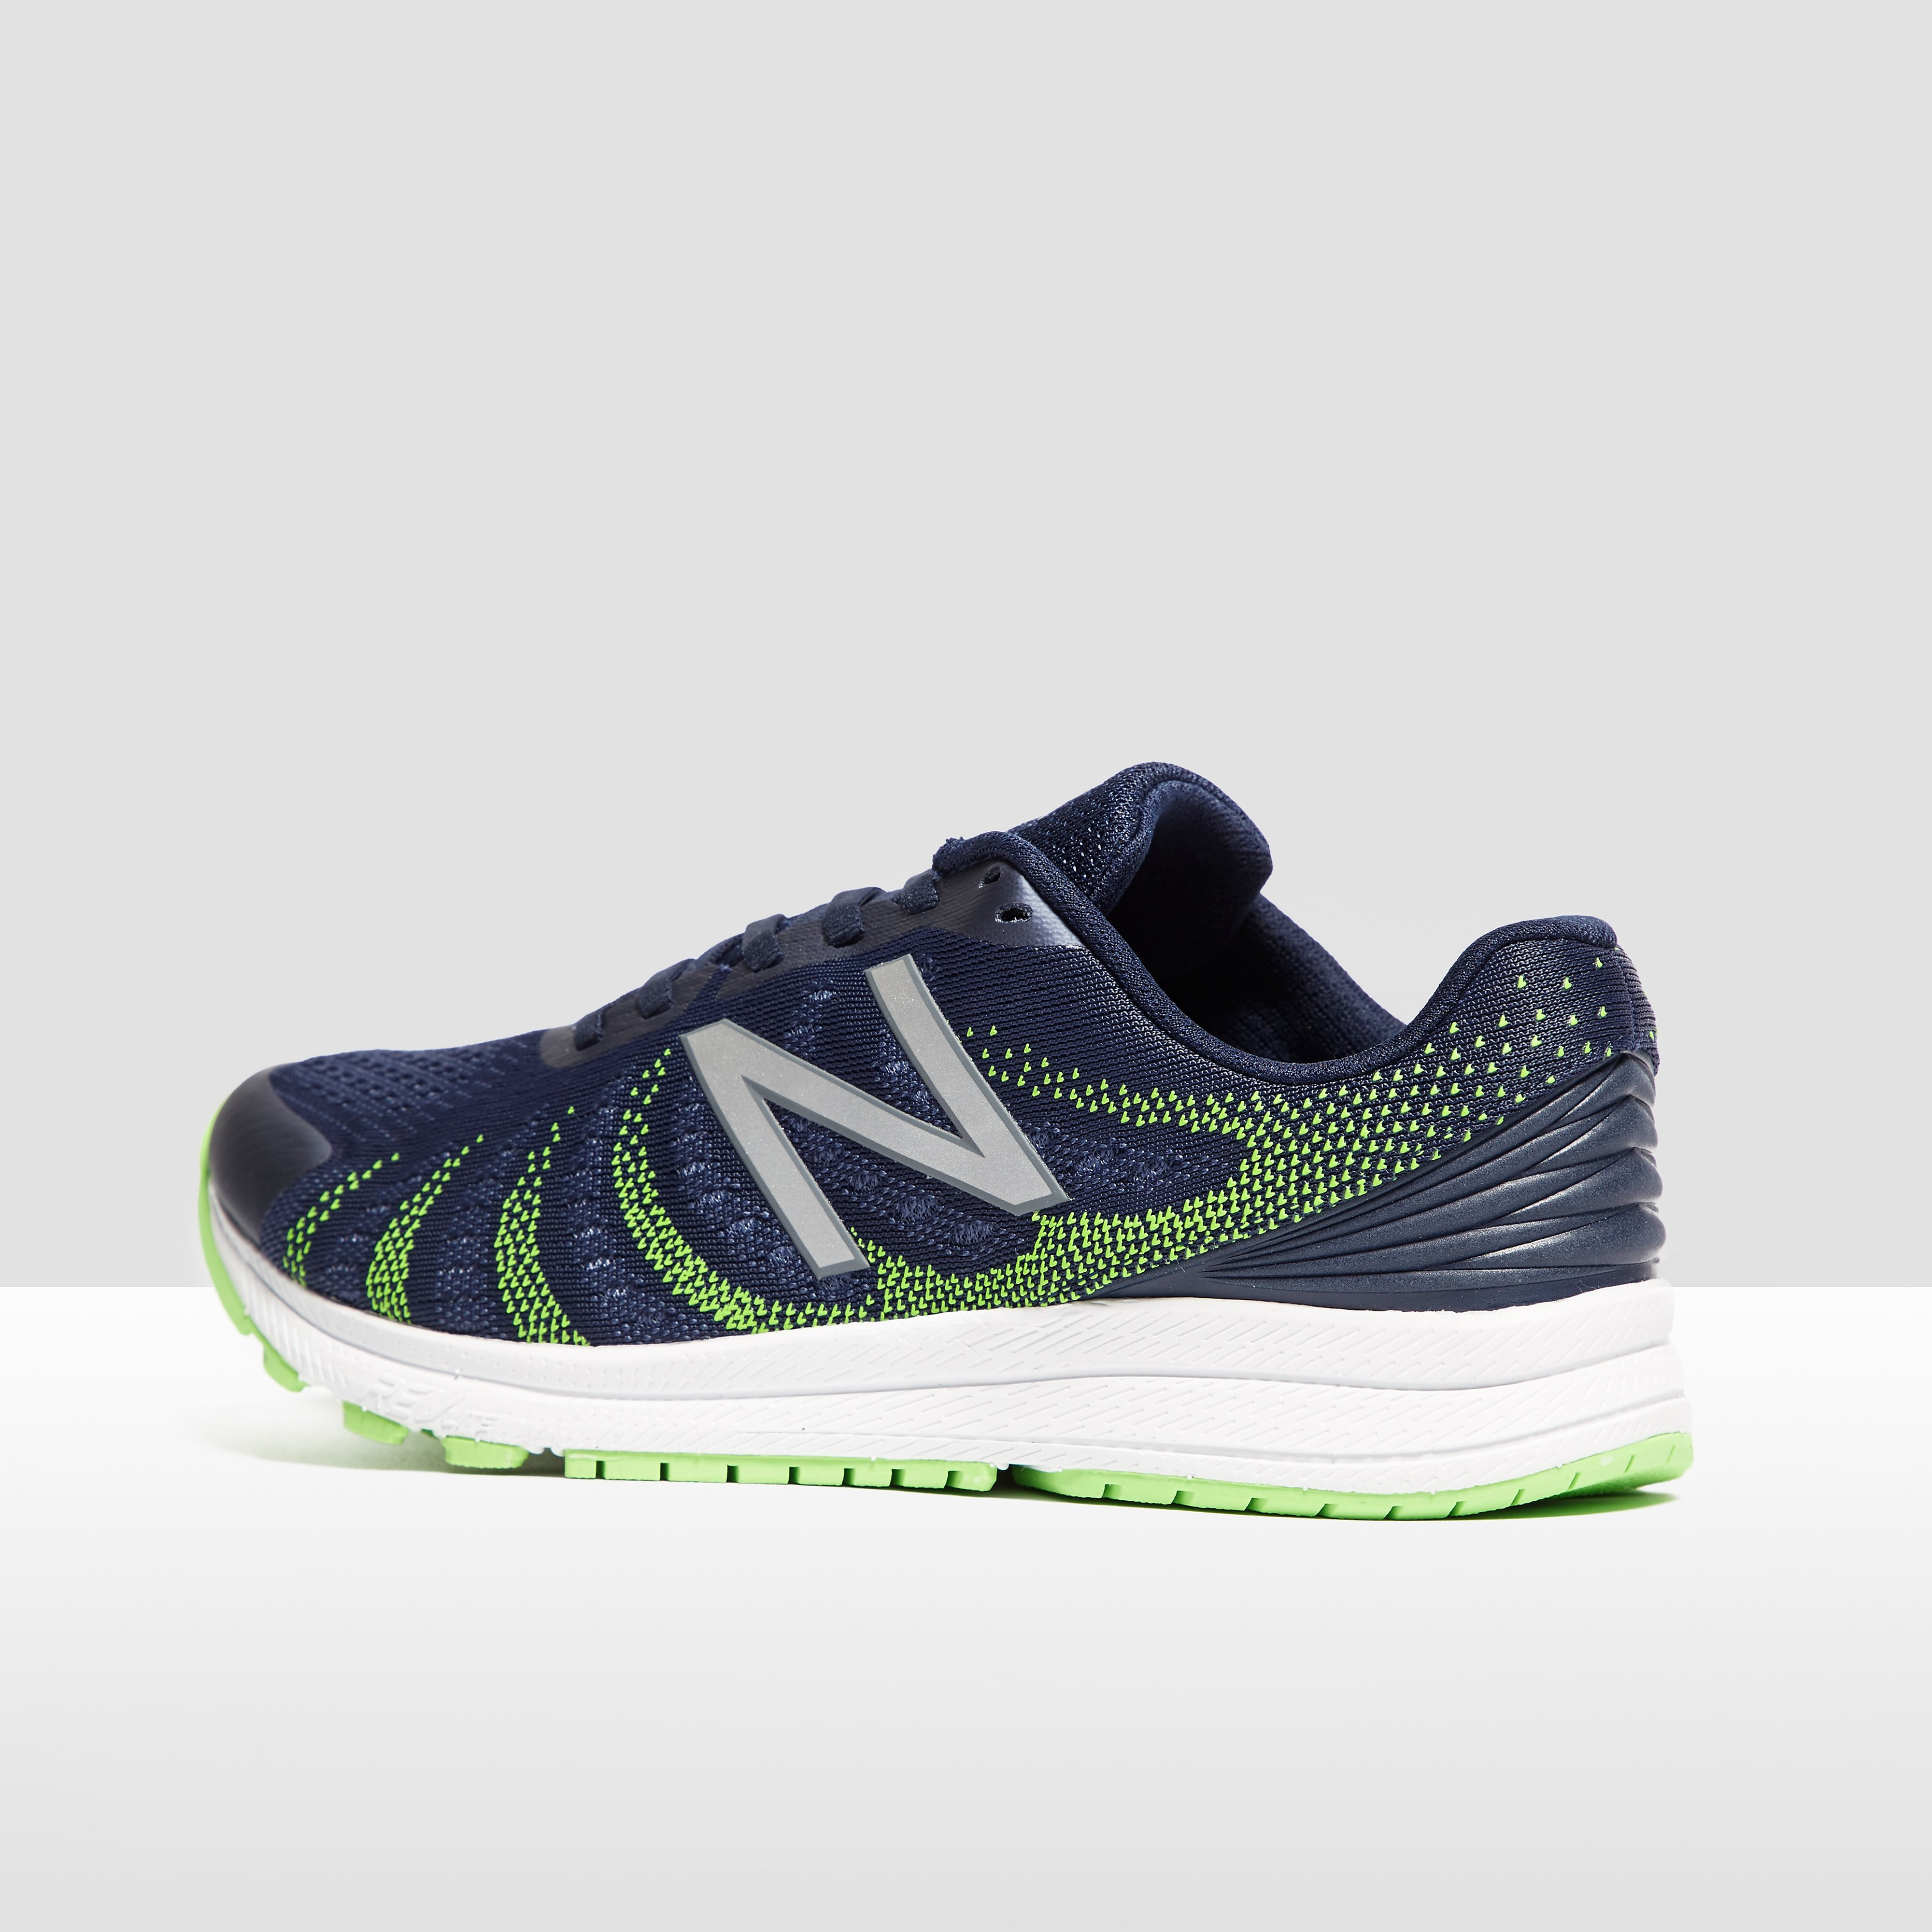 New Balance FuelCore Rush v3 Men's Running Shoes